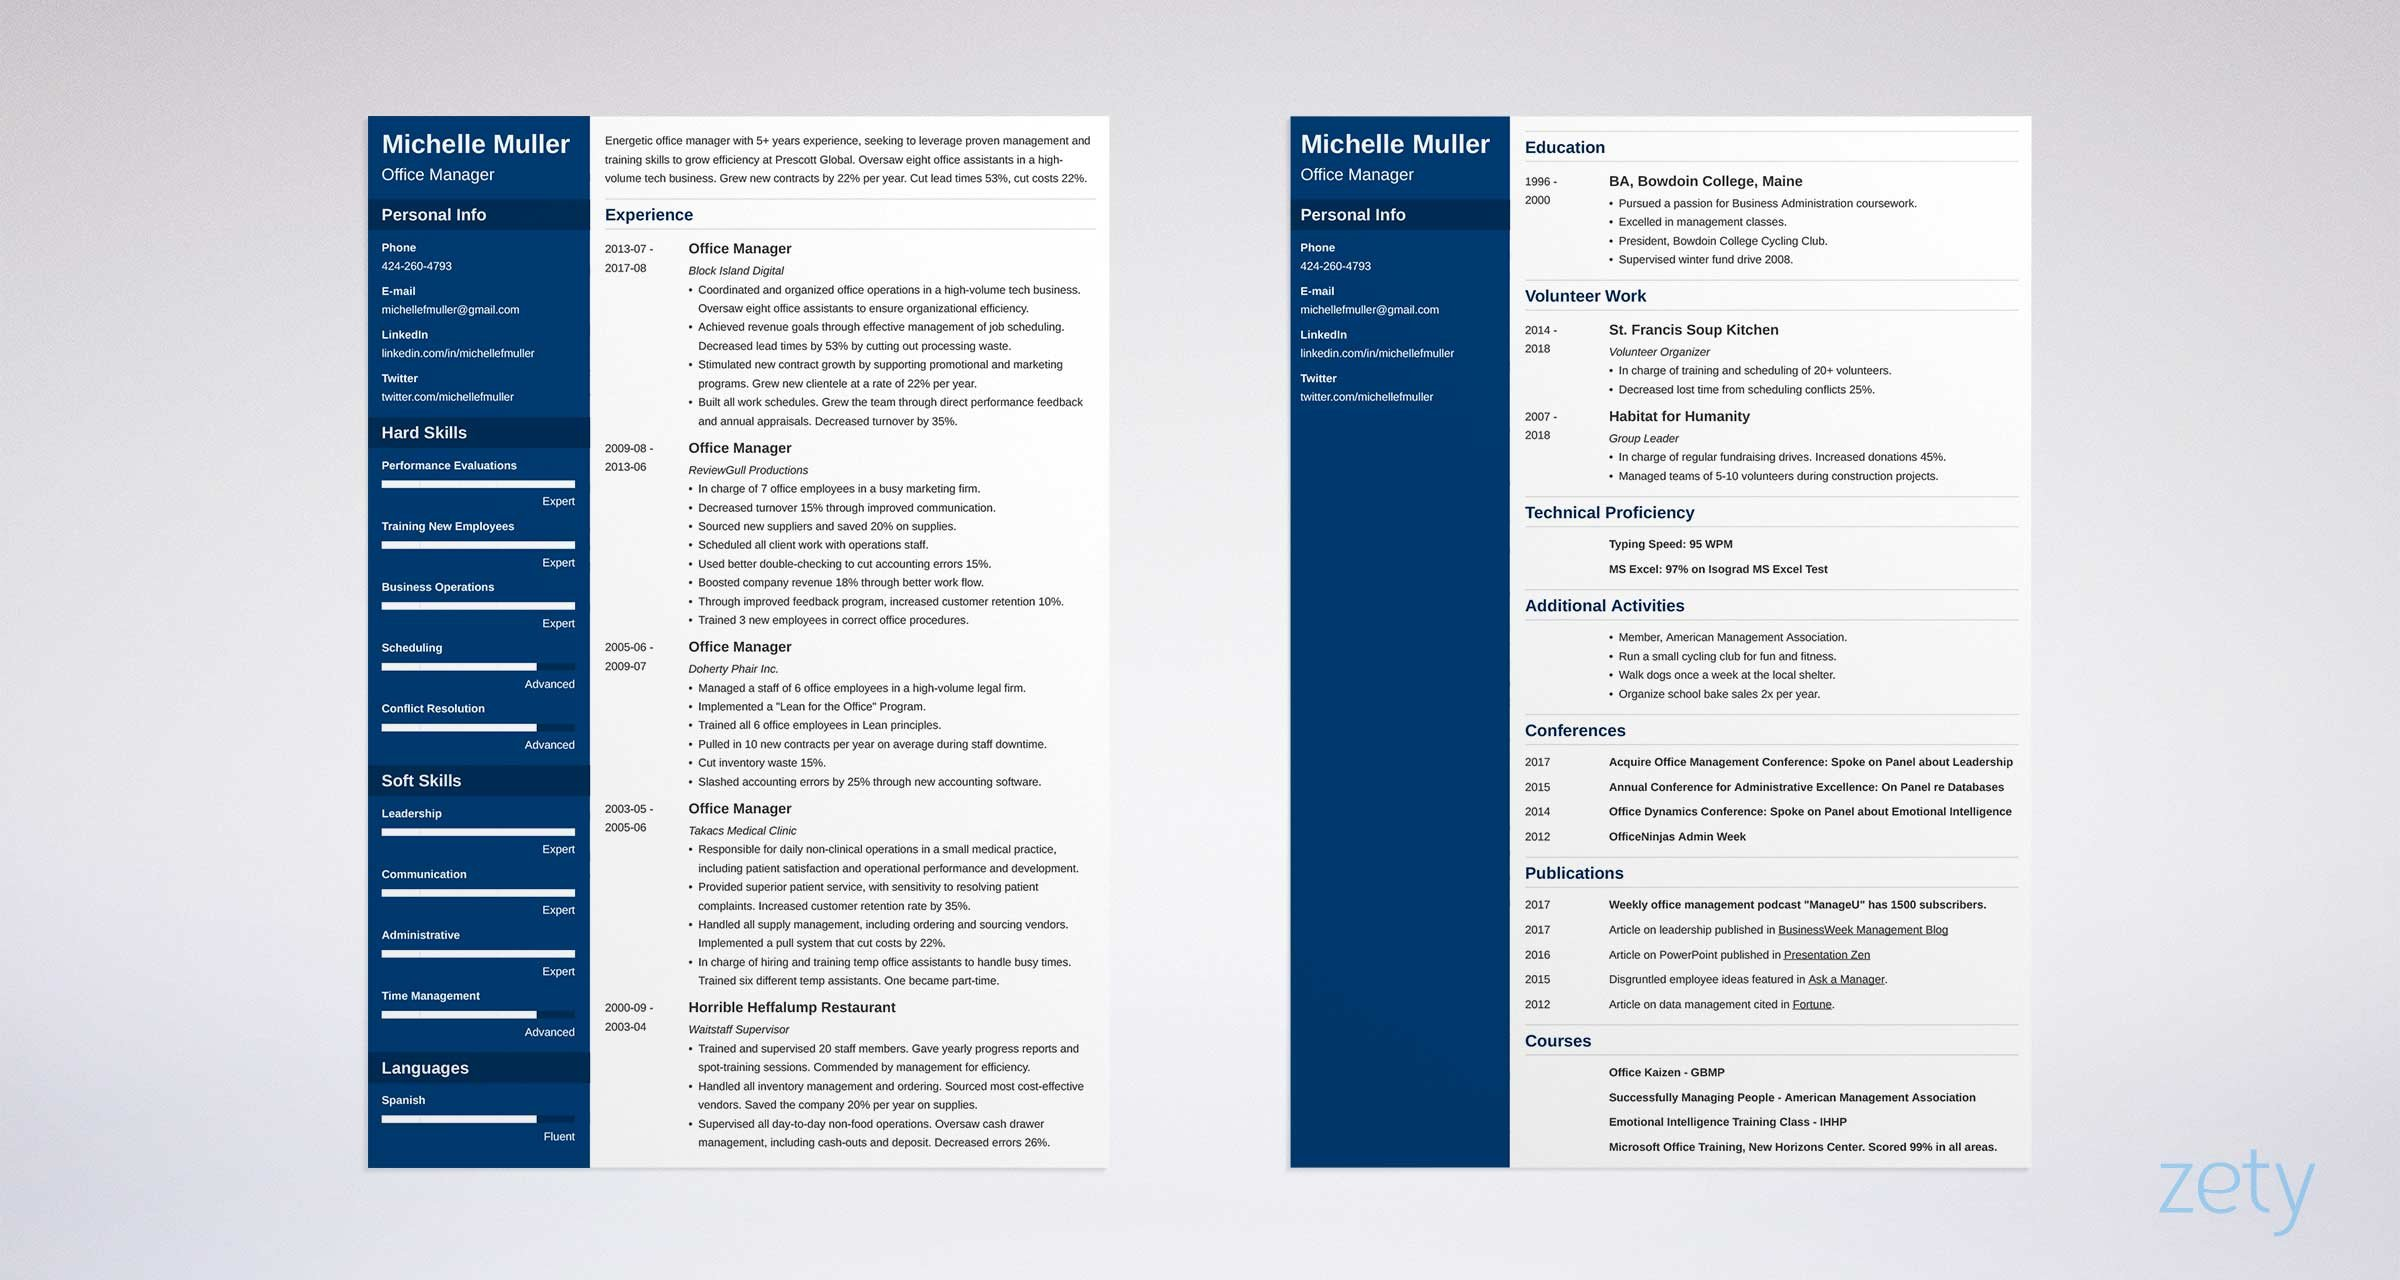 resume it crush your chances format tips two junior project manager new graduate Resume 2 Page Resume Format